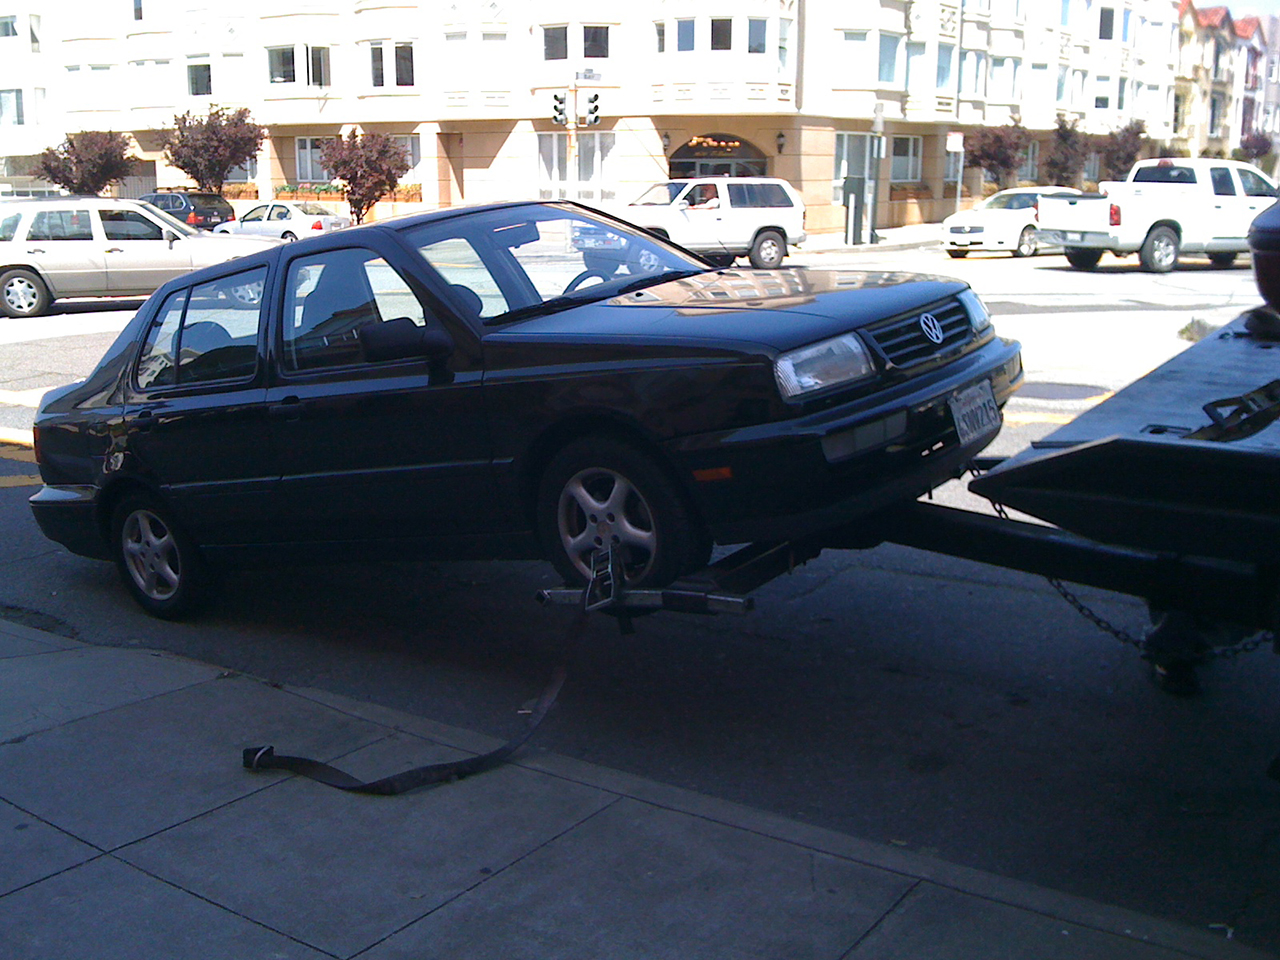 The trusty jetta donated to KQED.